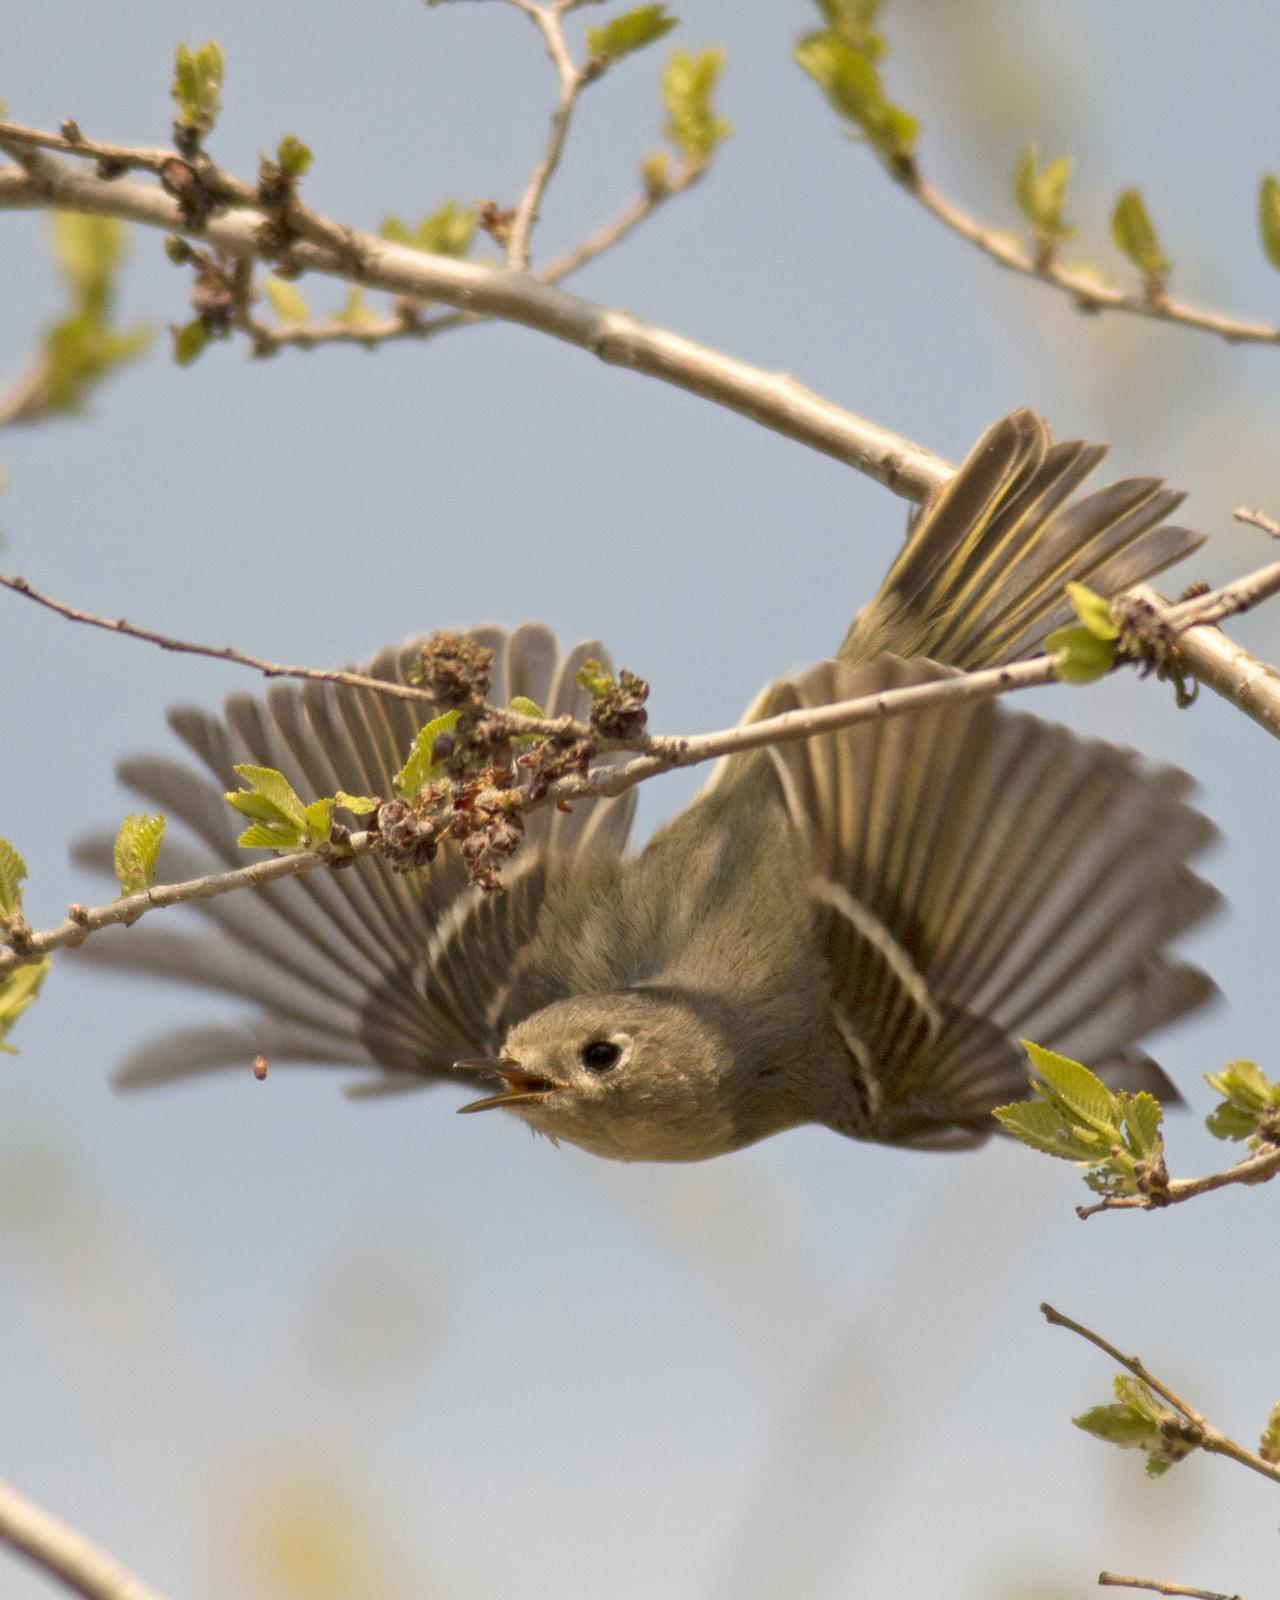 Ruby-crowned Kinglet Photo by Joshua Jones